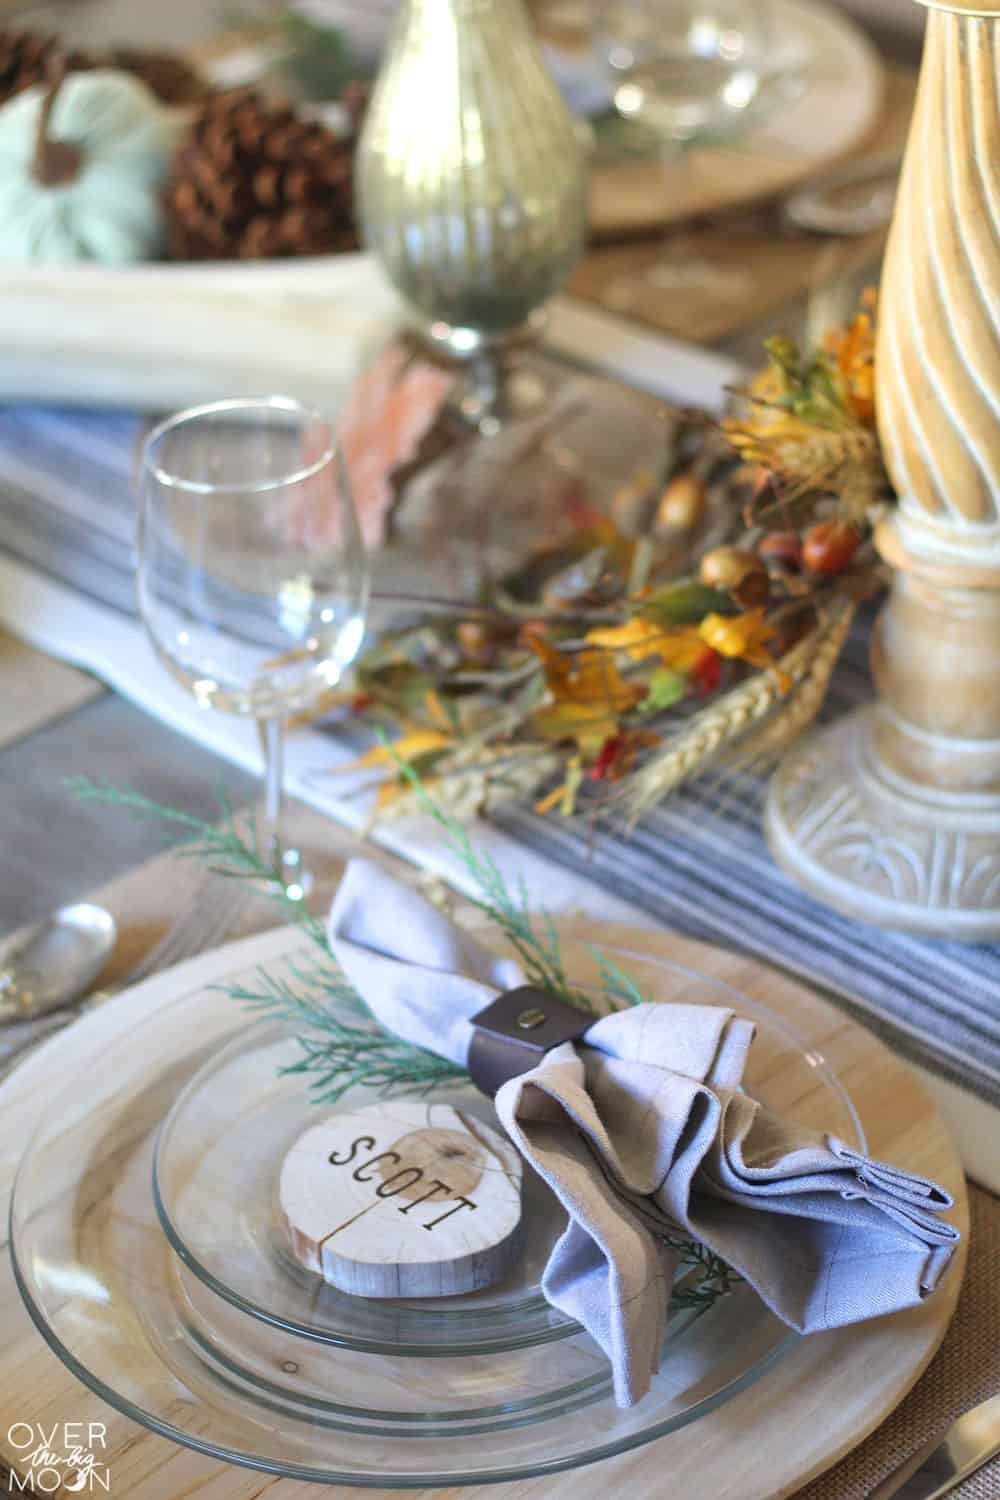 https://overthebigmoon.com/wp-content/uploads/2017/11/diy-thanksgiving-table-setting.jpg